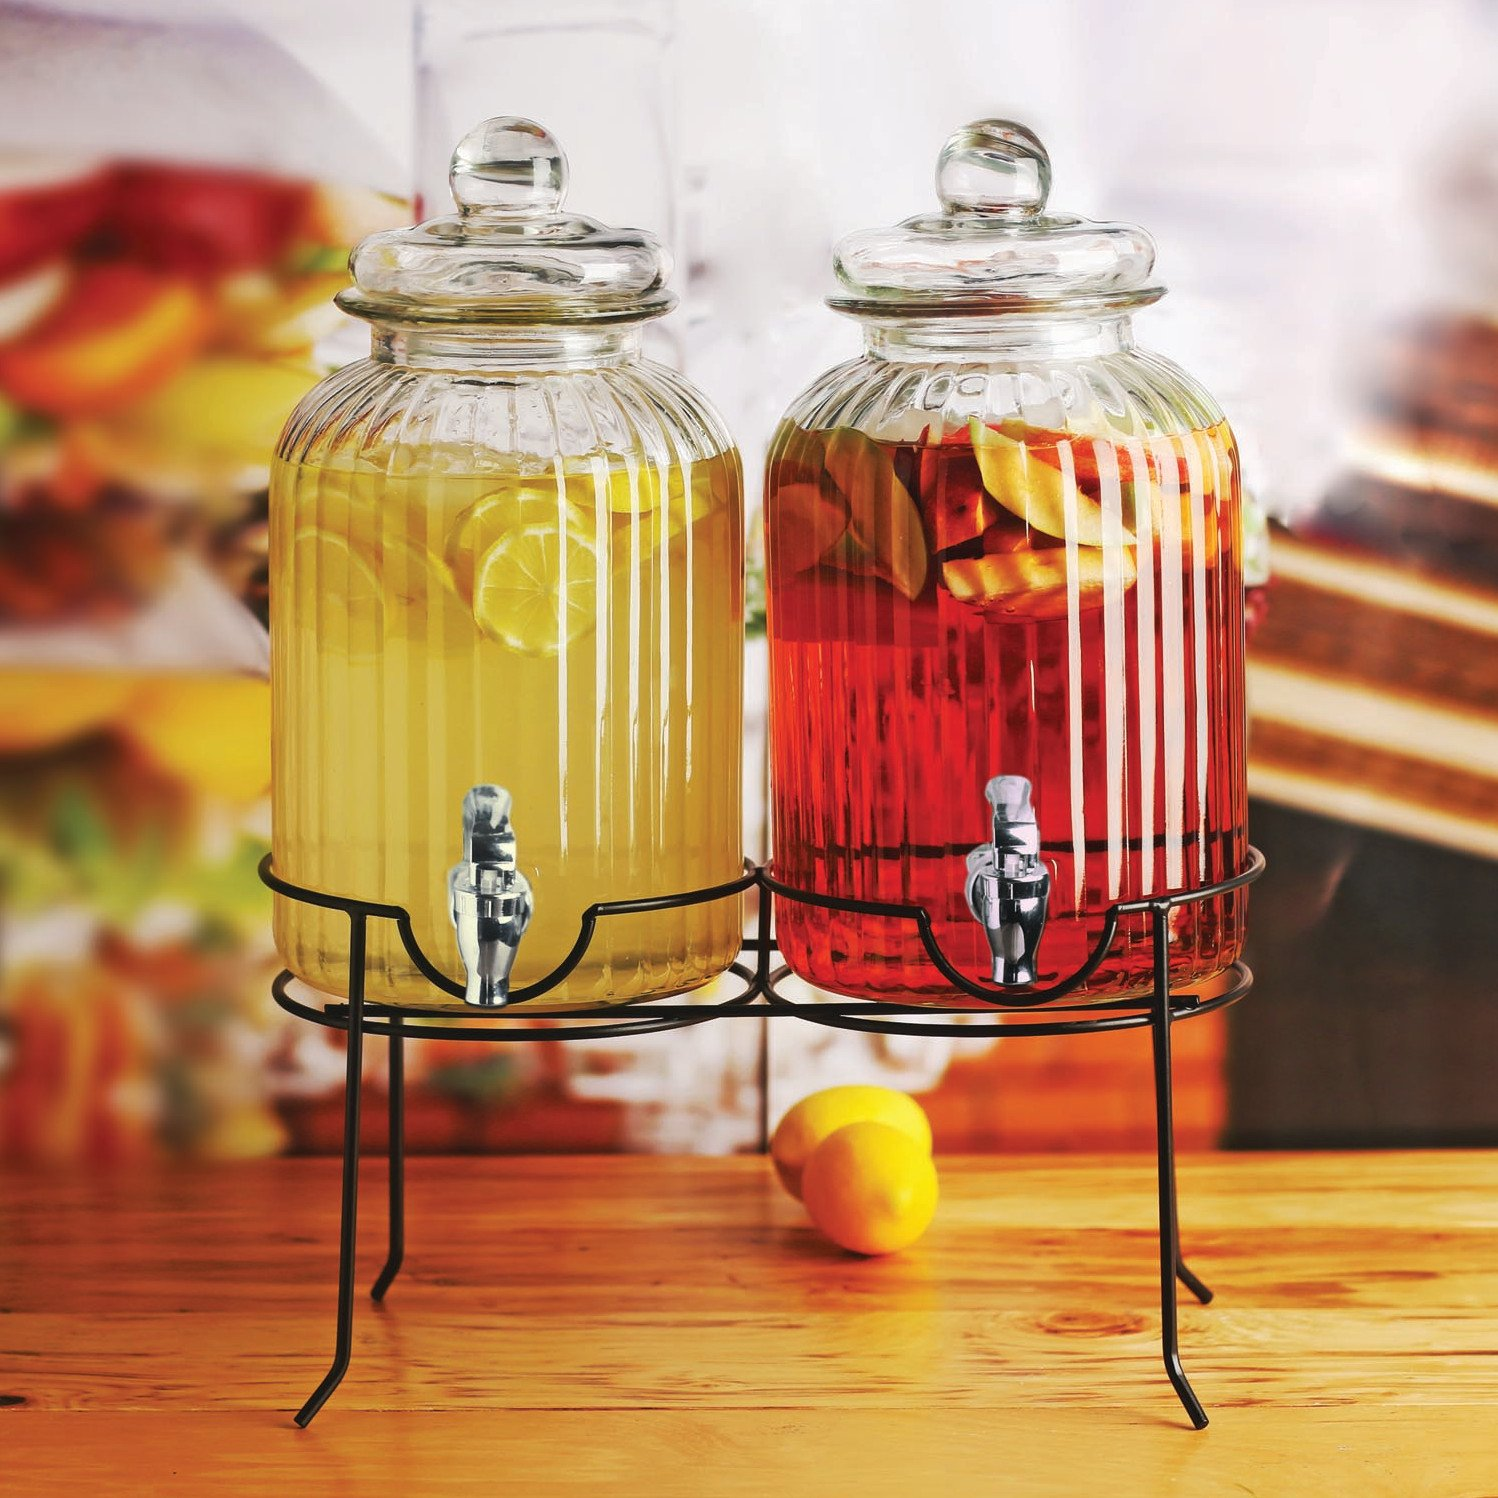 Wine Ridge Kombucha and Cold Drinks 1.3 Gallon Each Juice Circleware Sun Tea Mason Jar Double Glass Beverage Dispensers with Metal Stand and Lid Entertainment Kitchen Glassware for Water